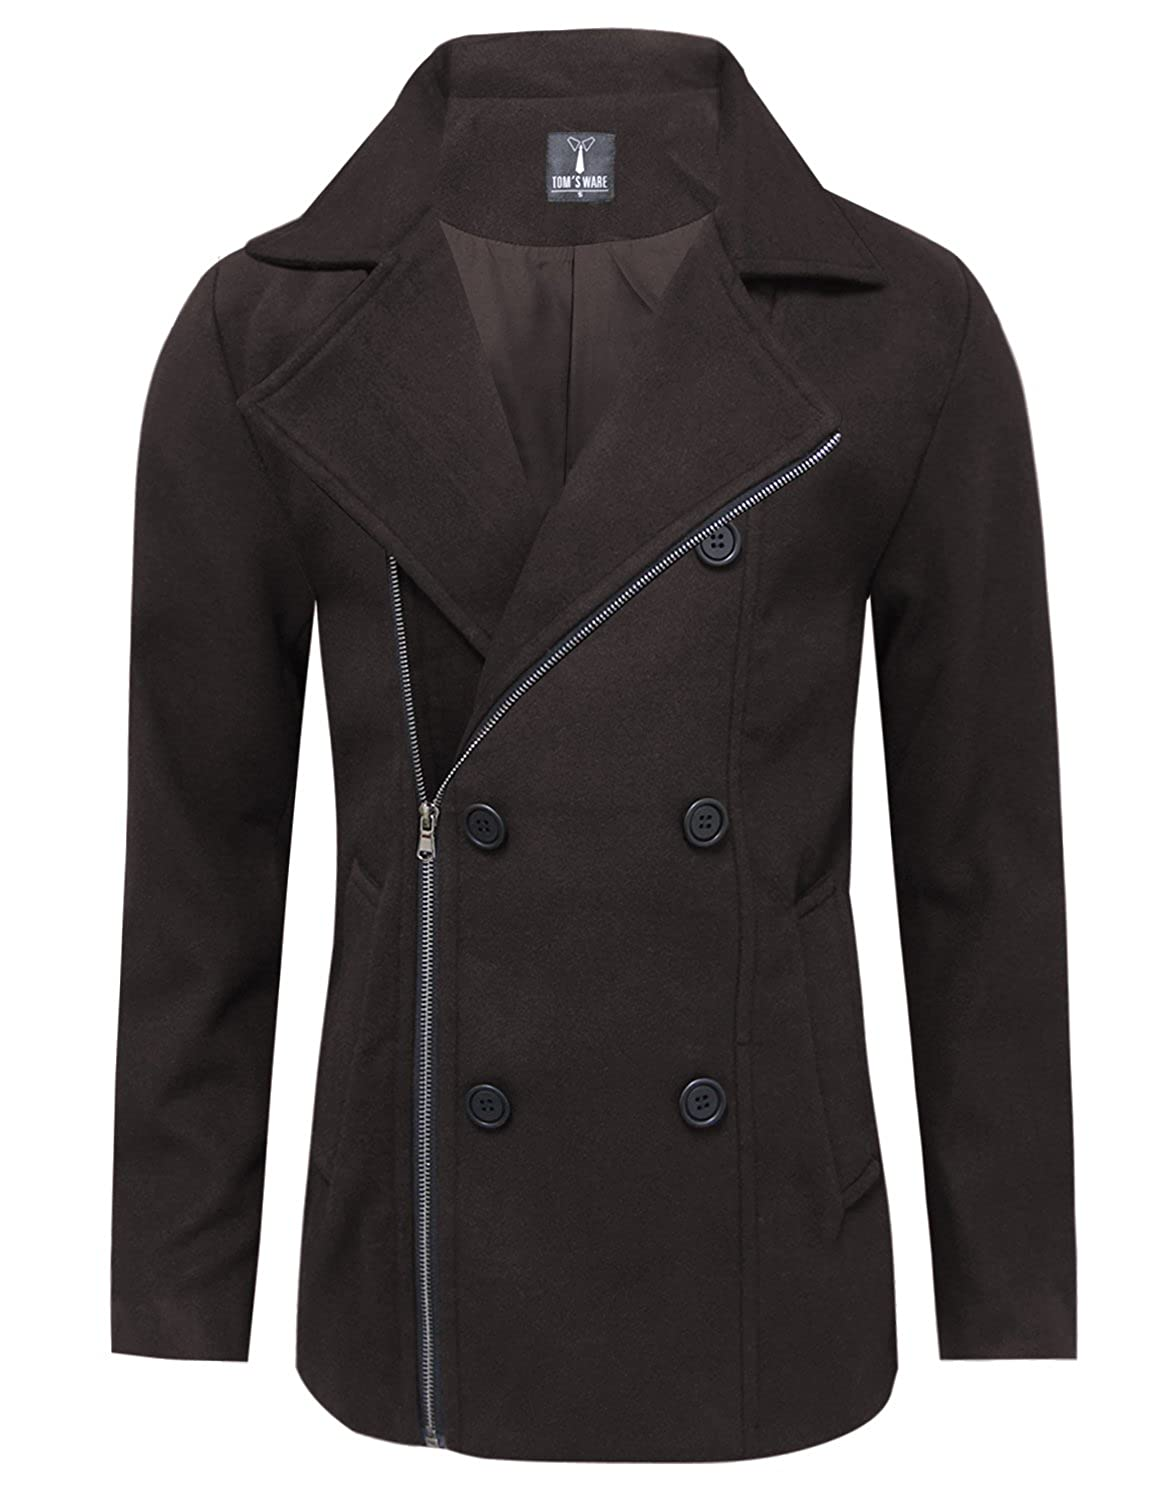 Tom's Ware Mens Stylish Zip Up Wool Double Breasted Pea Coat TWCC17